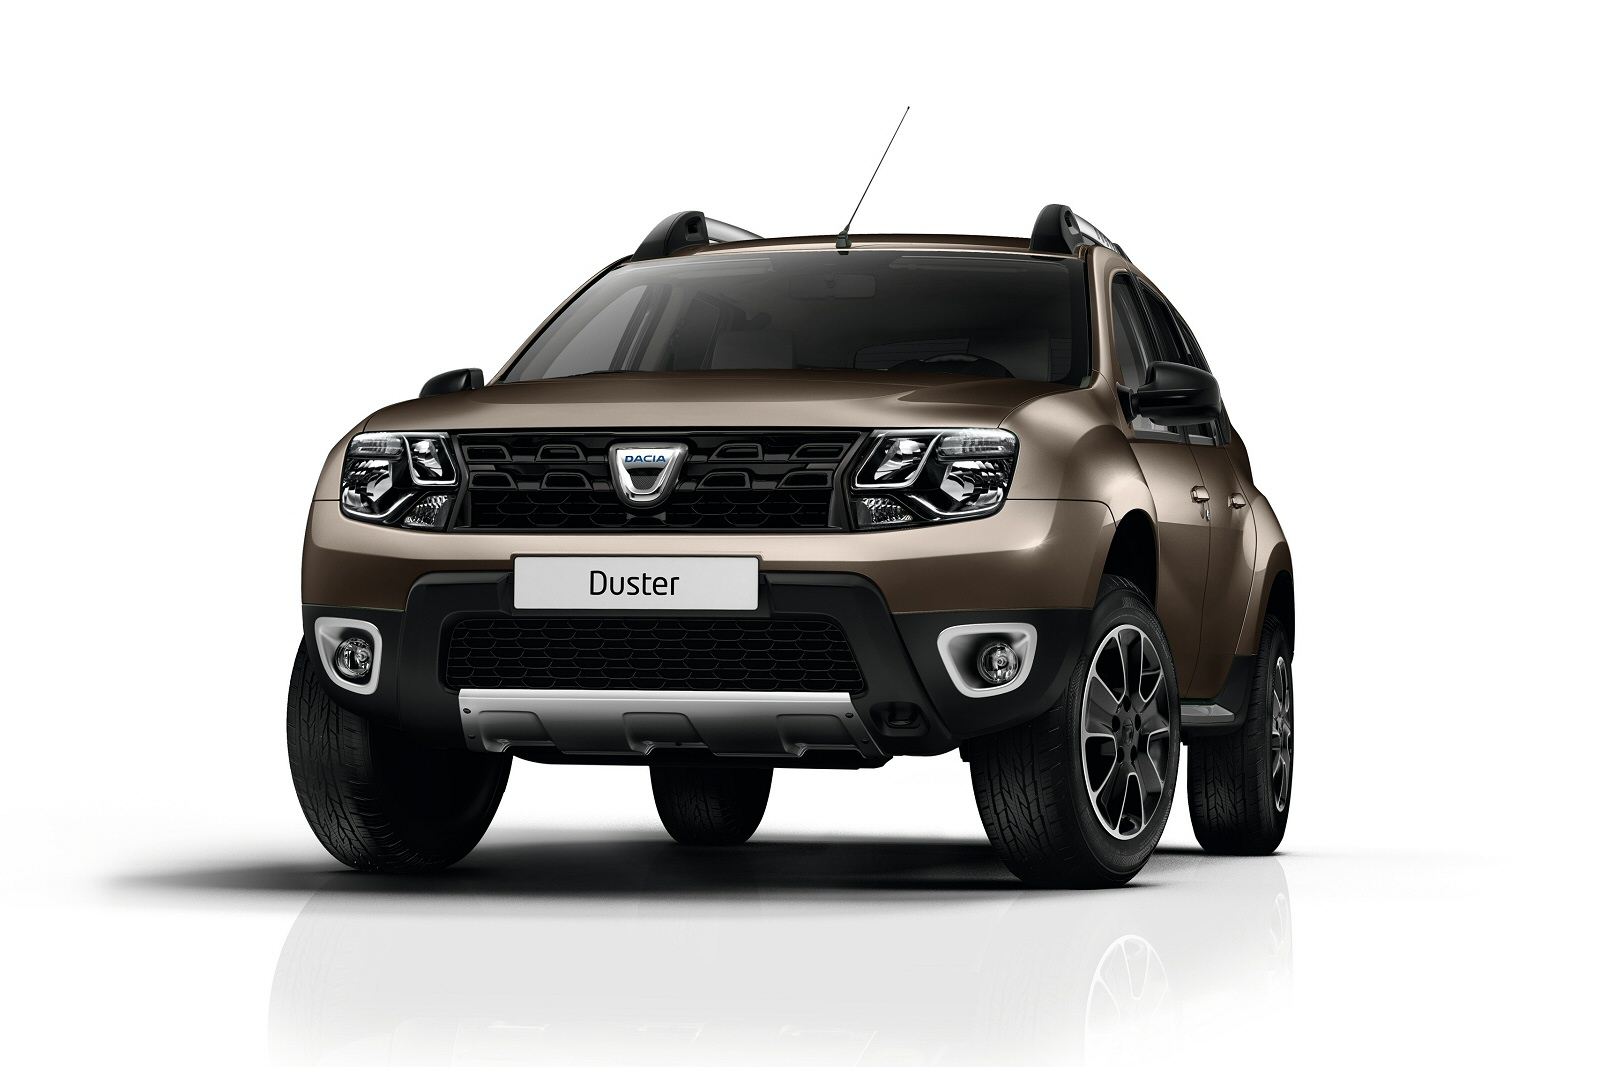 new dacia duster 1 2 tce 125 laureate 5dr 4x4 petrol estate for sale bristol street. Black Bedroom Furniture Sets. Home Design Ideas